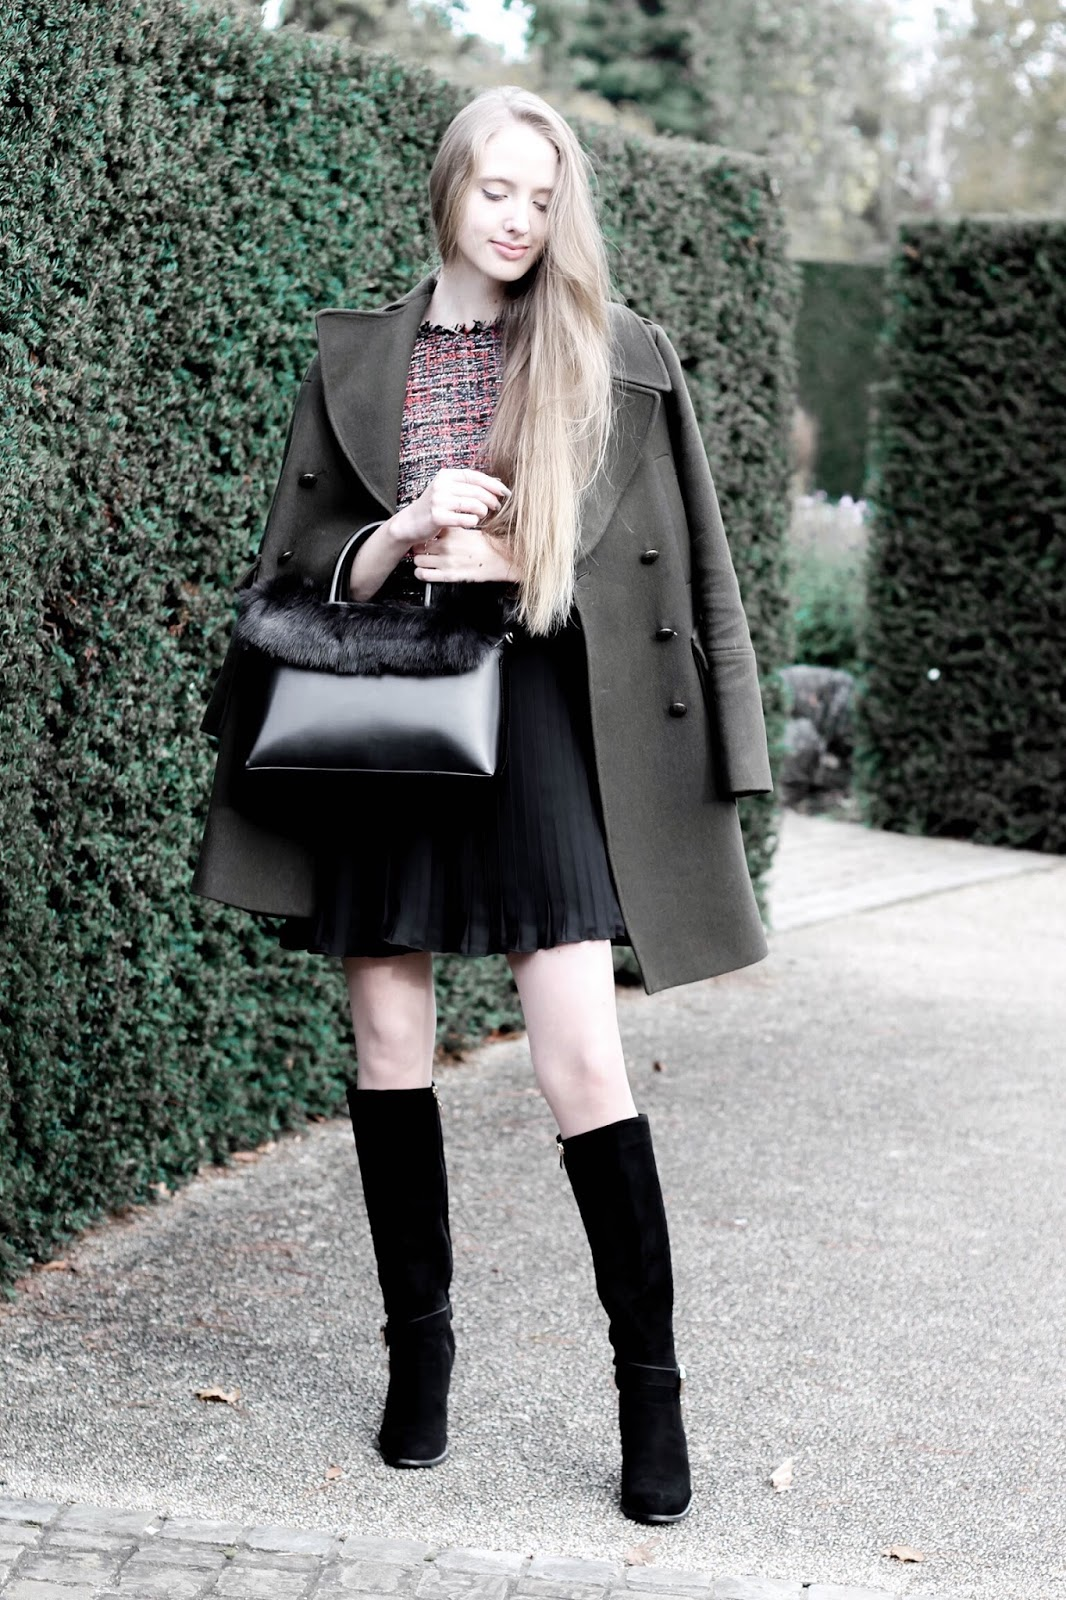 Fashion blog styling a khaki wool coat in winter